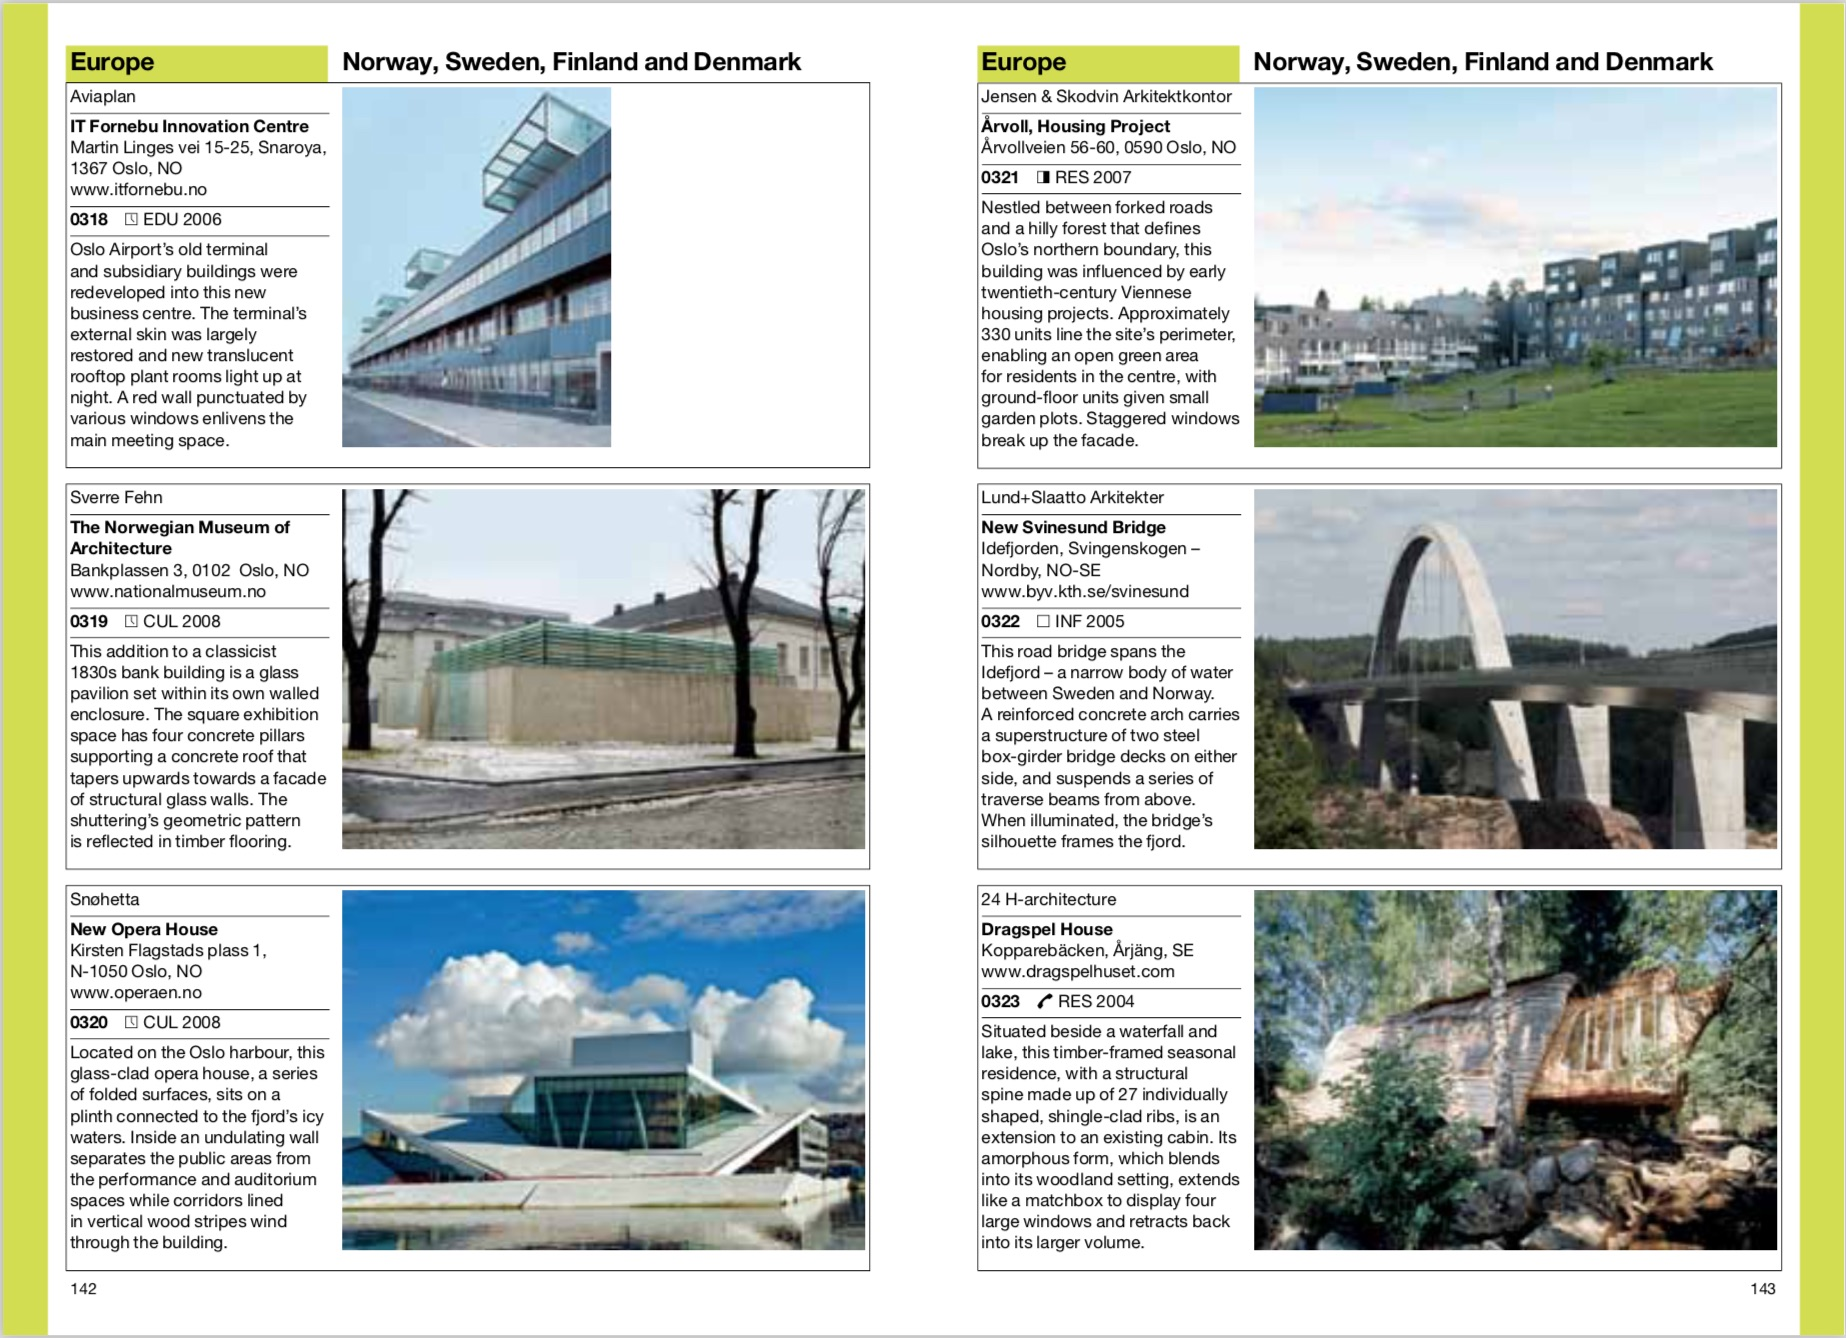 By Phaidon Editors from The Phaidon Atlas of 21st Century World Architecture copyright Phaidon 2011